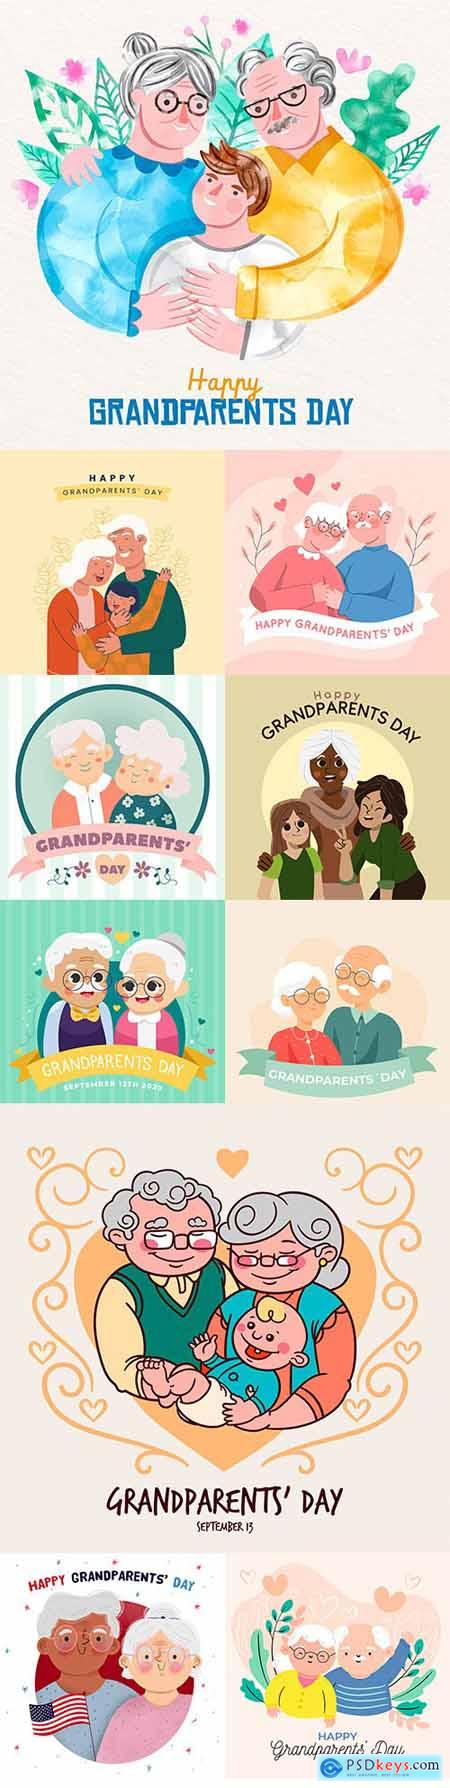 National grandparents day flat design illustration